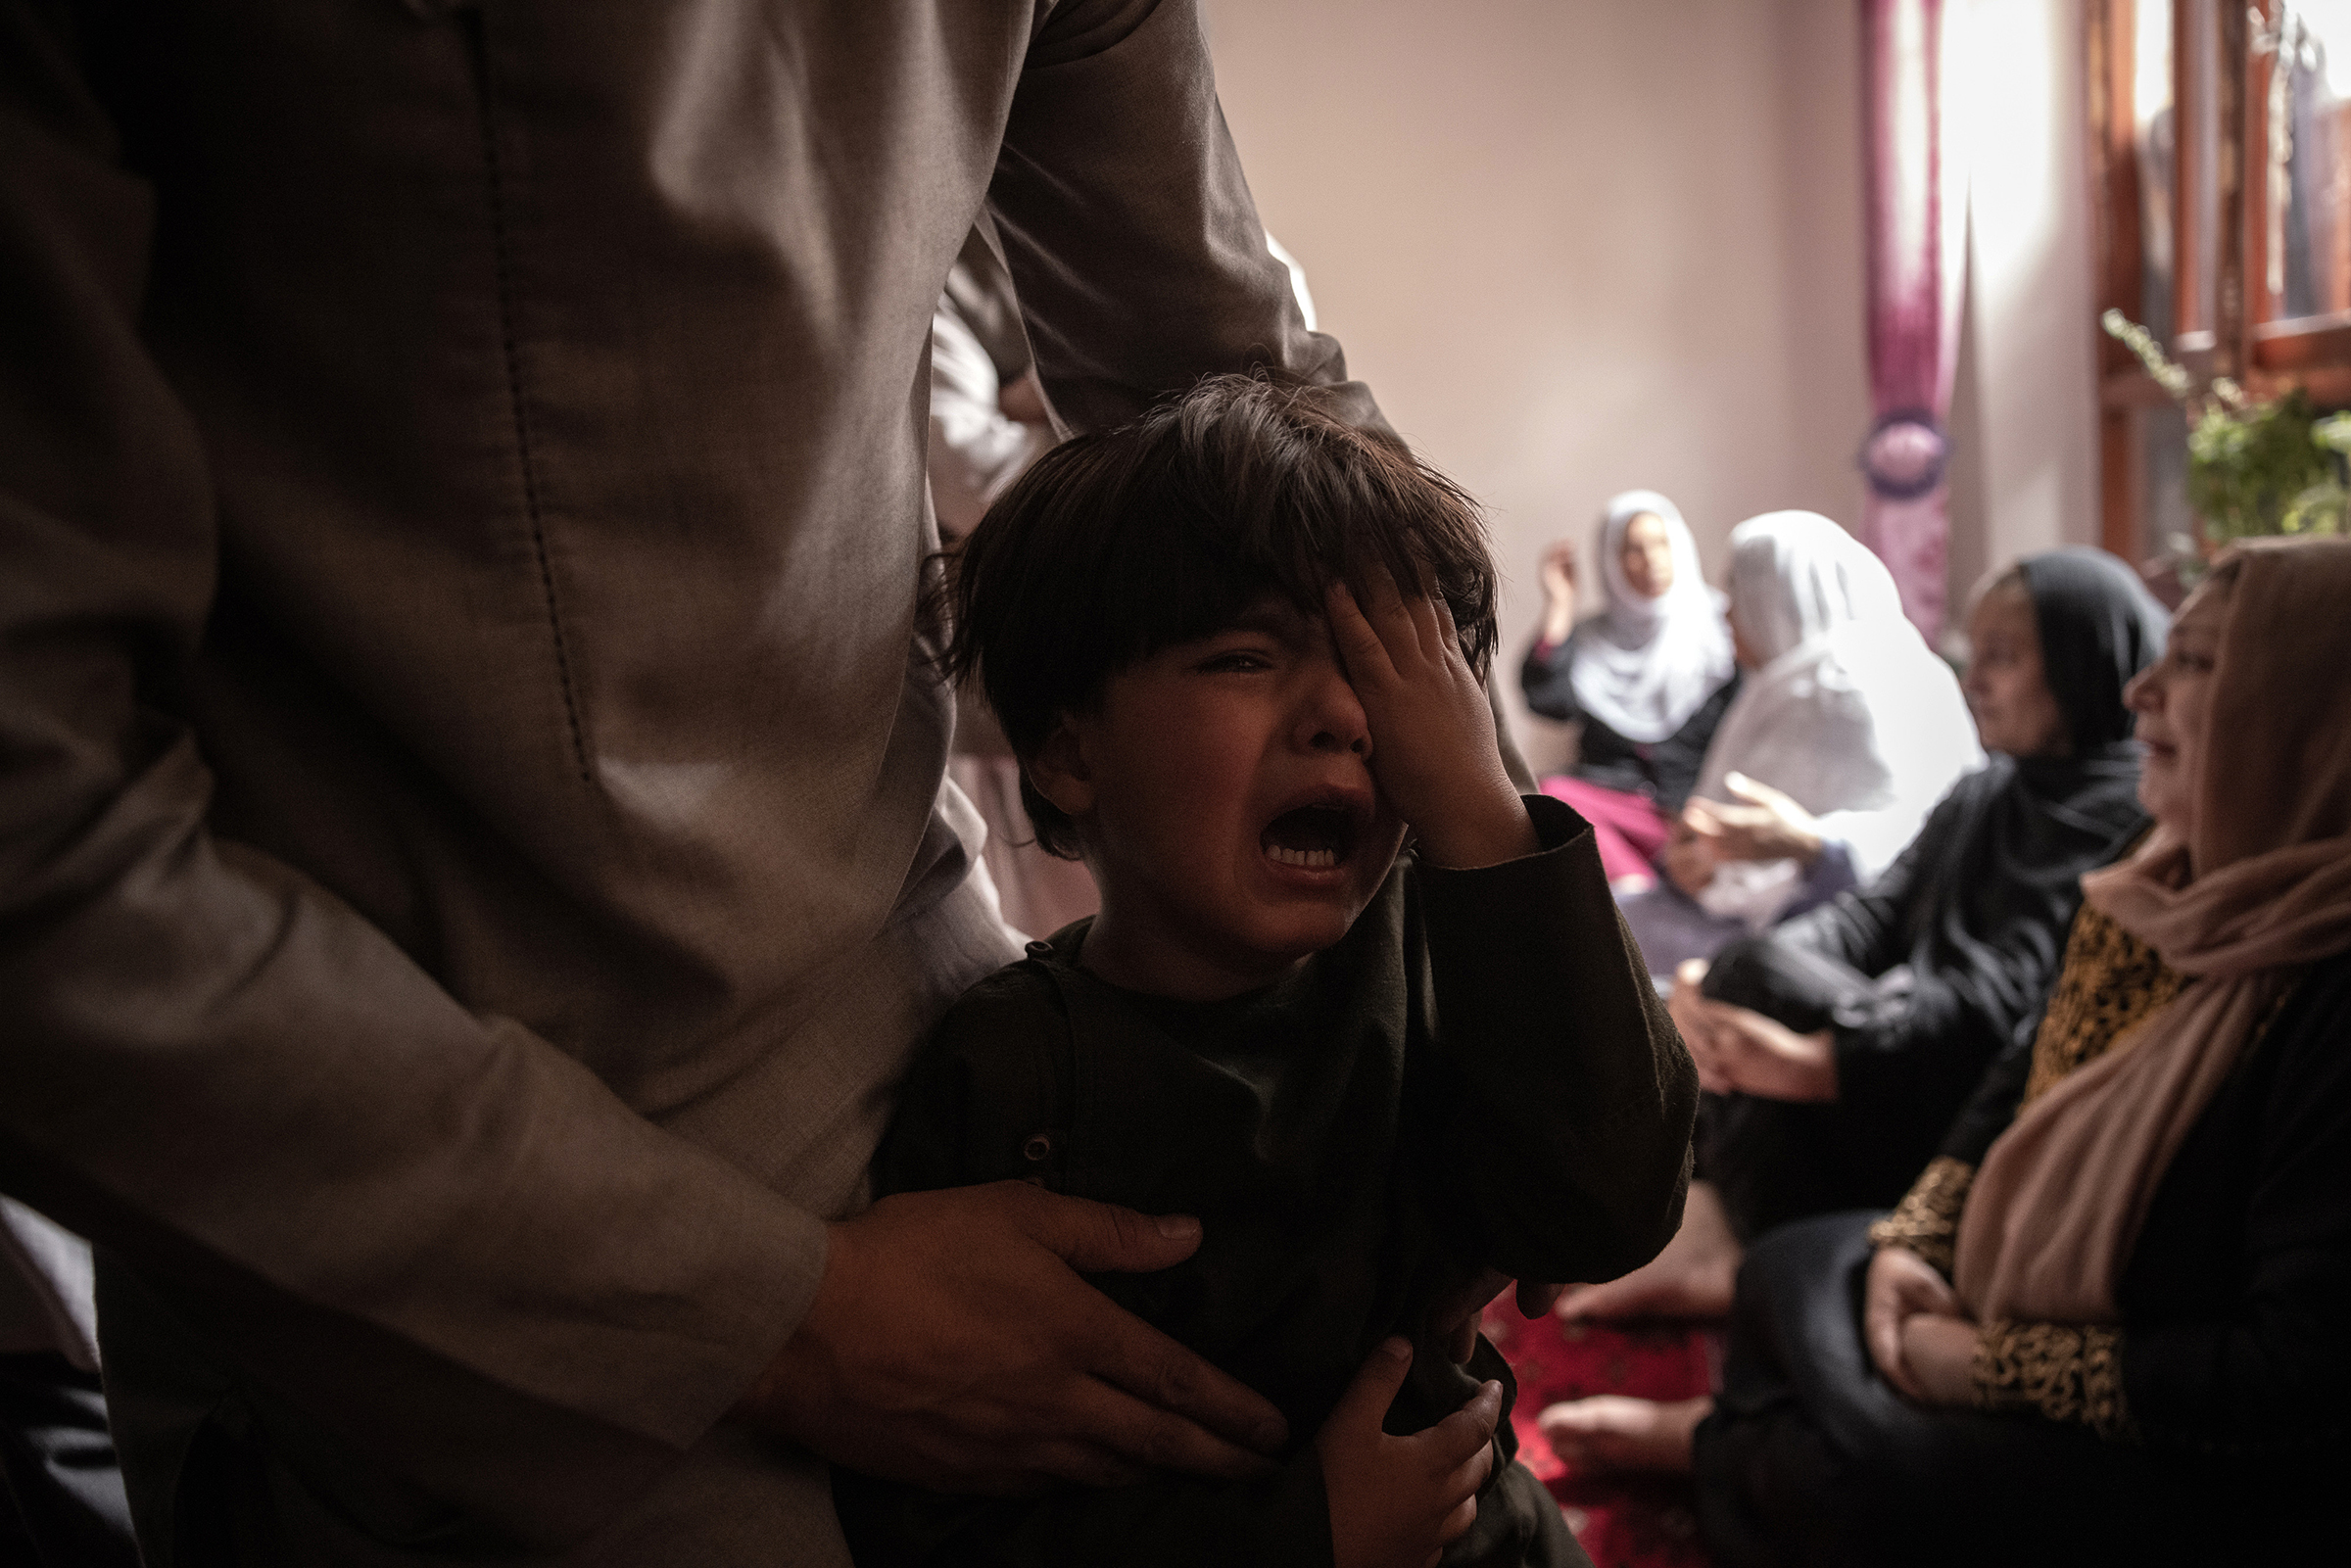 A boy cries over the death of his sister in the drone strike.